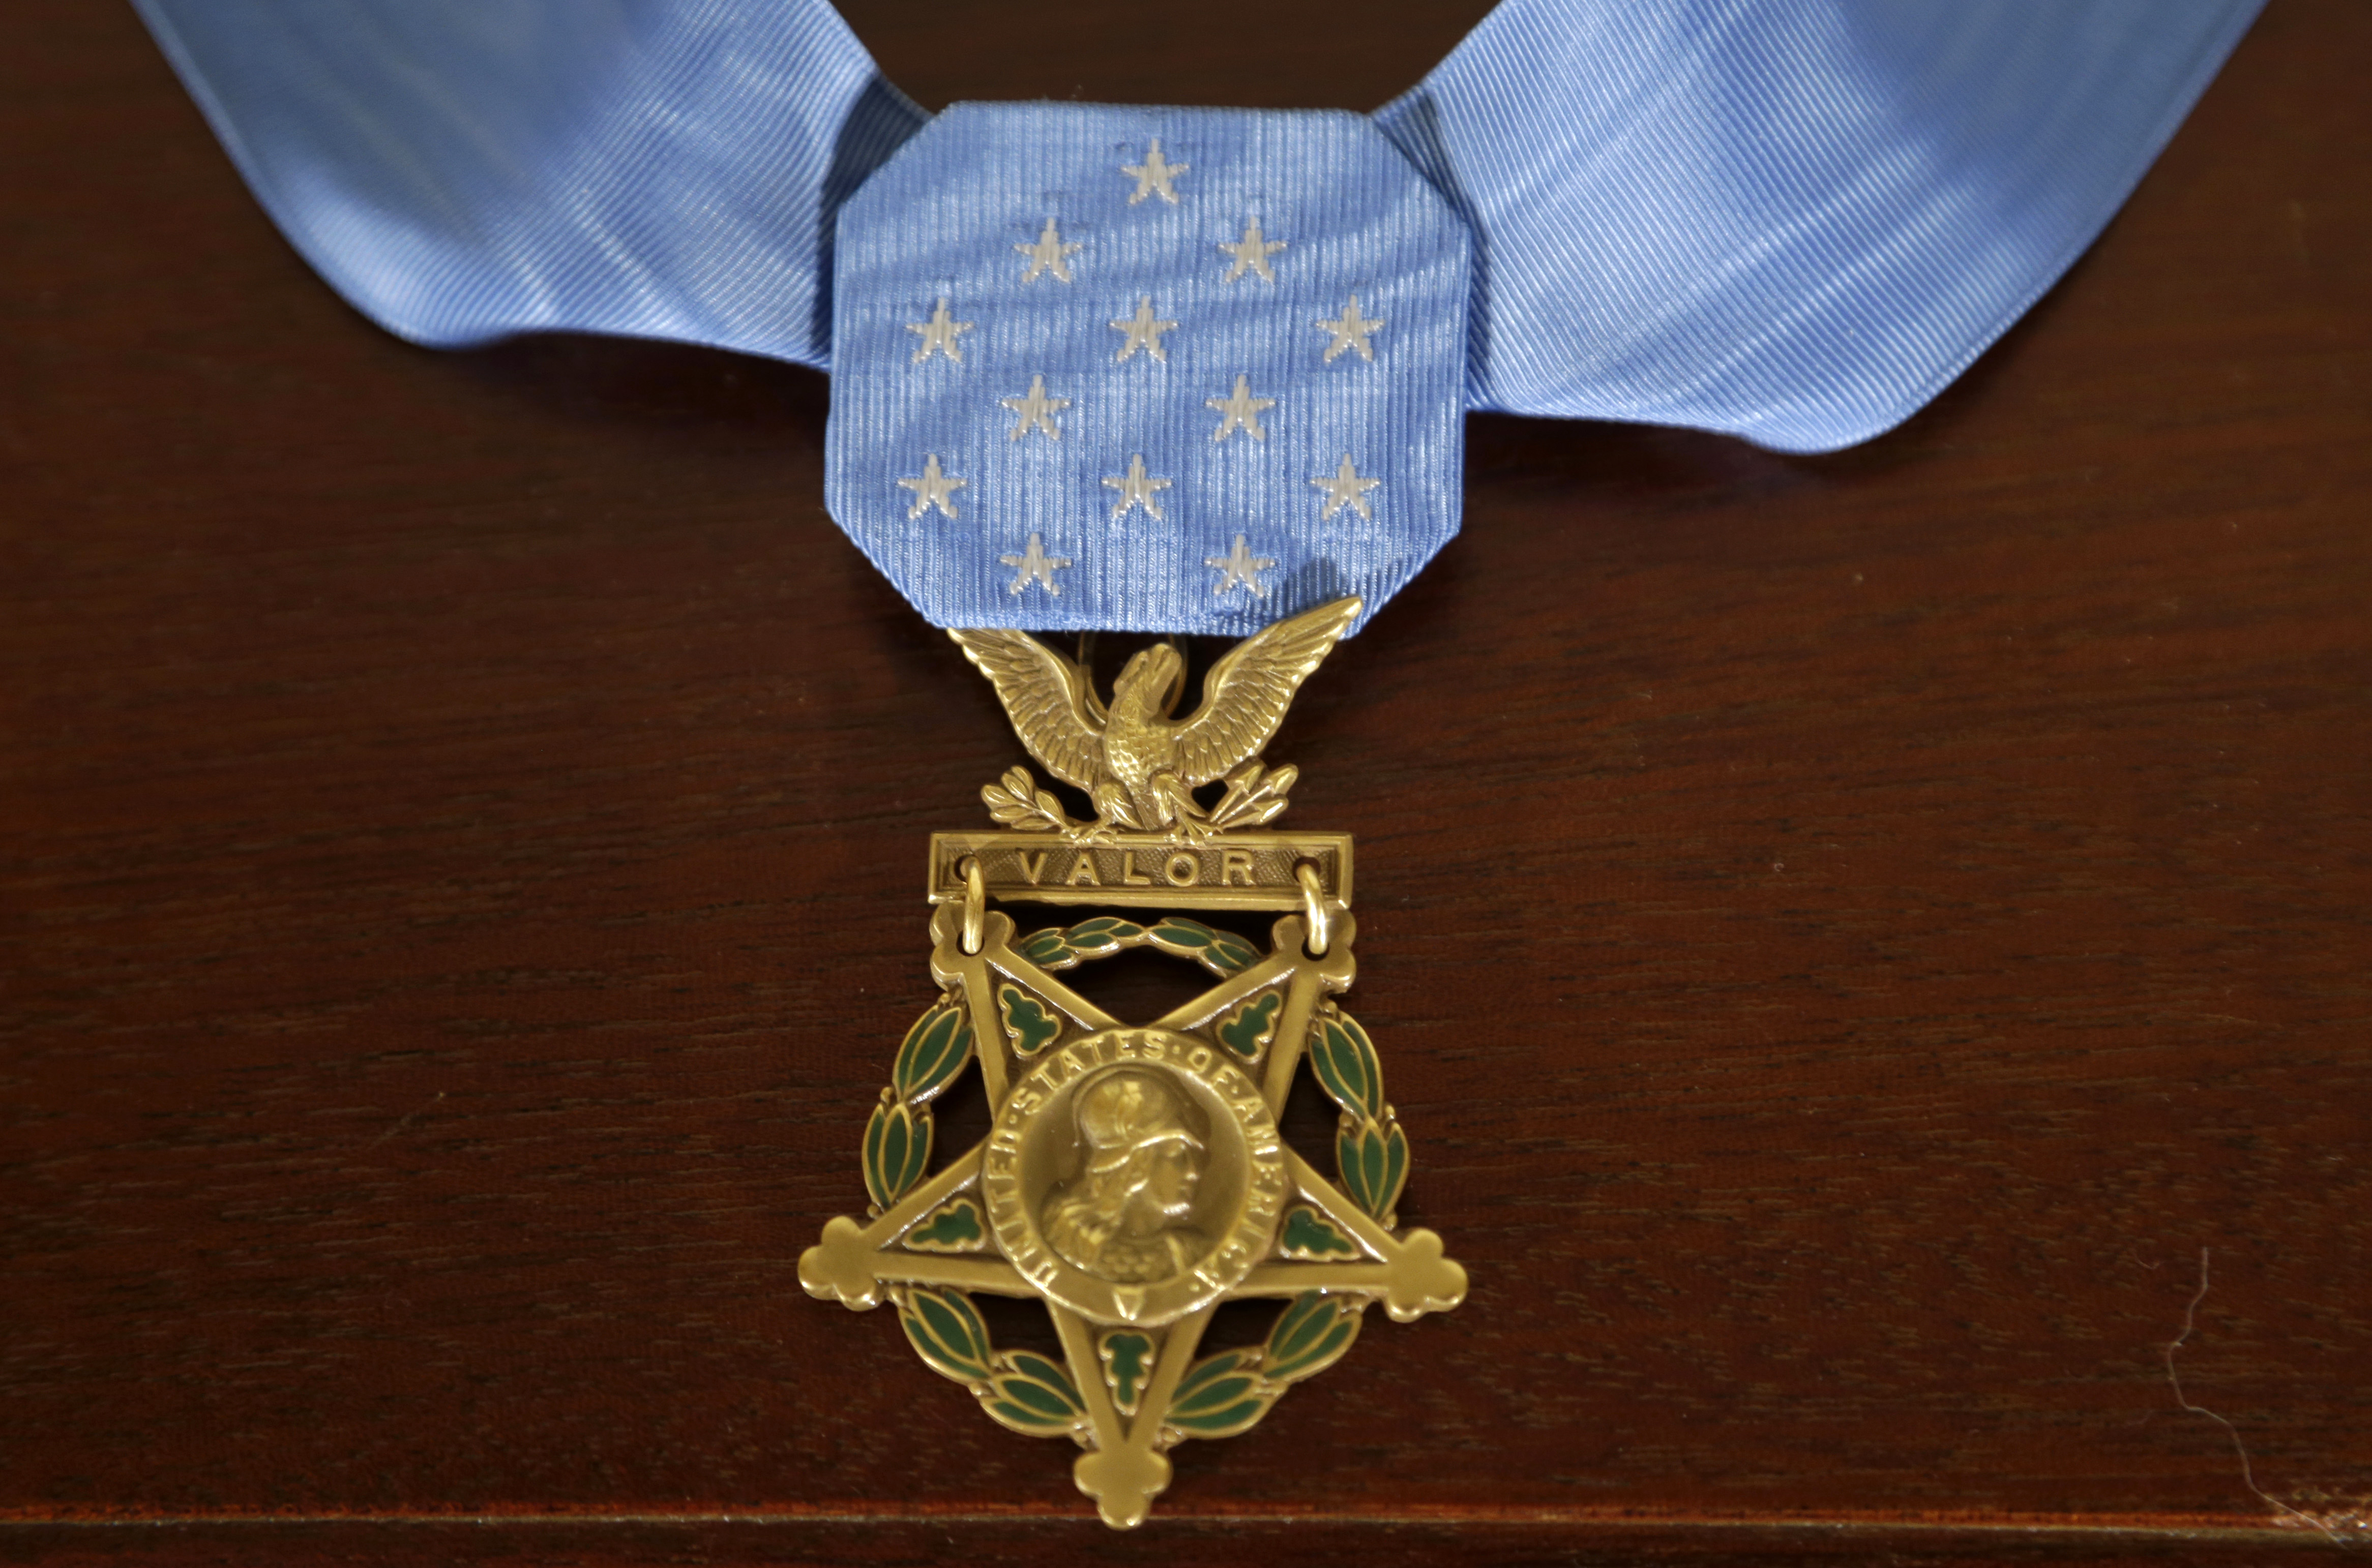 'It's their medal': 2 Medal of Honor recipients will donate their medals to 4th ID